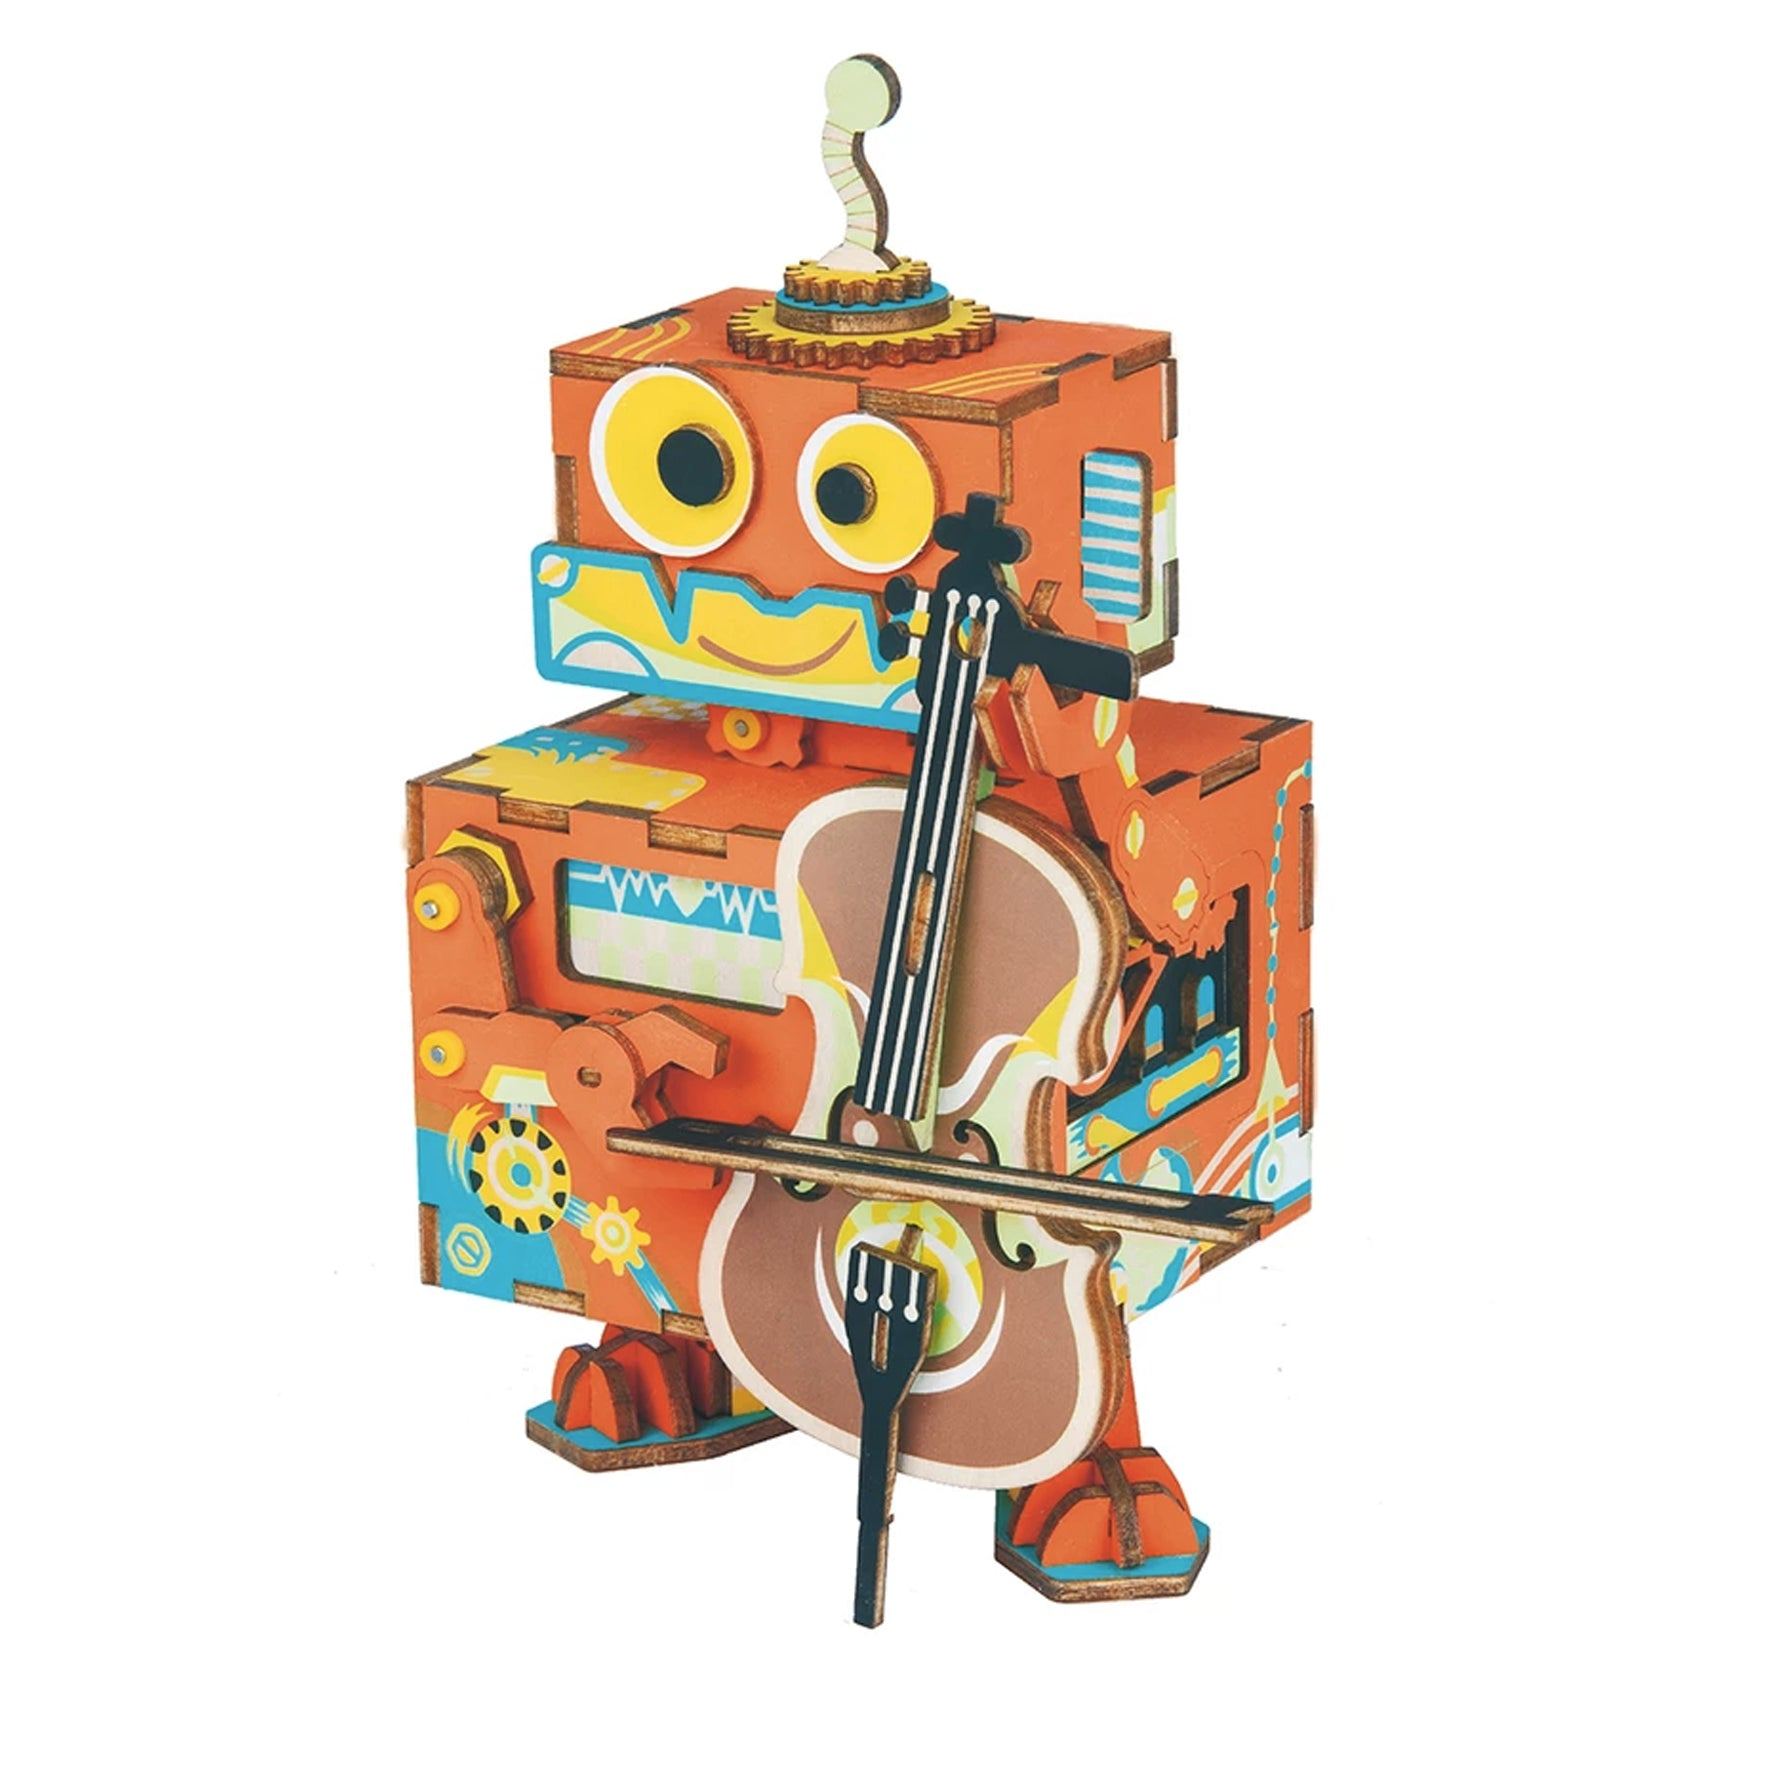 Puzzle 3D madera Robotime – Little Performer MB caja musical